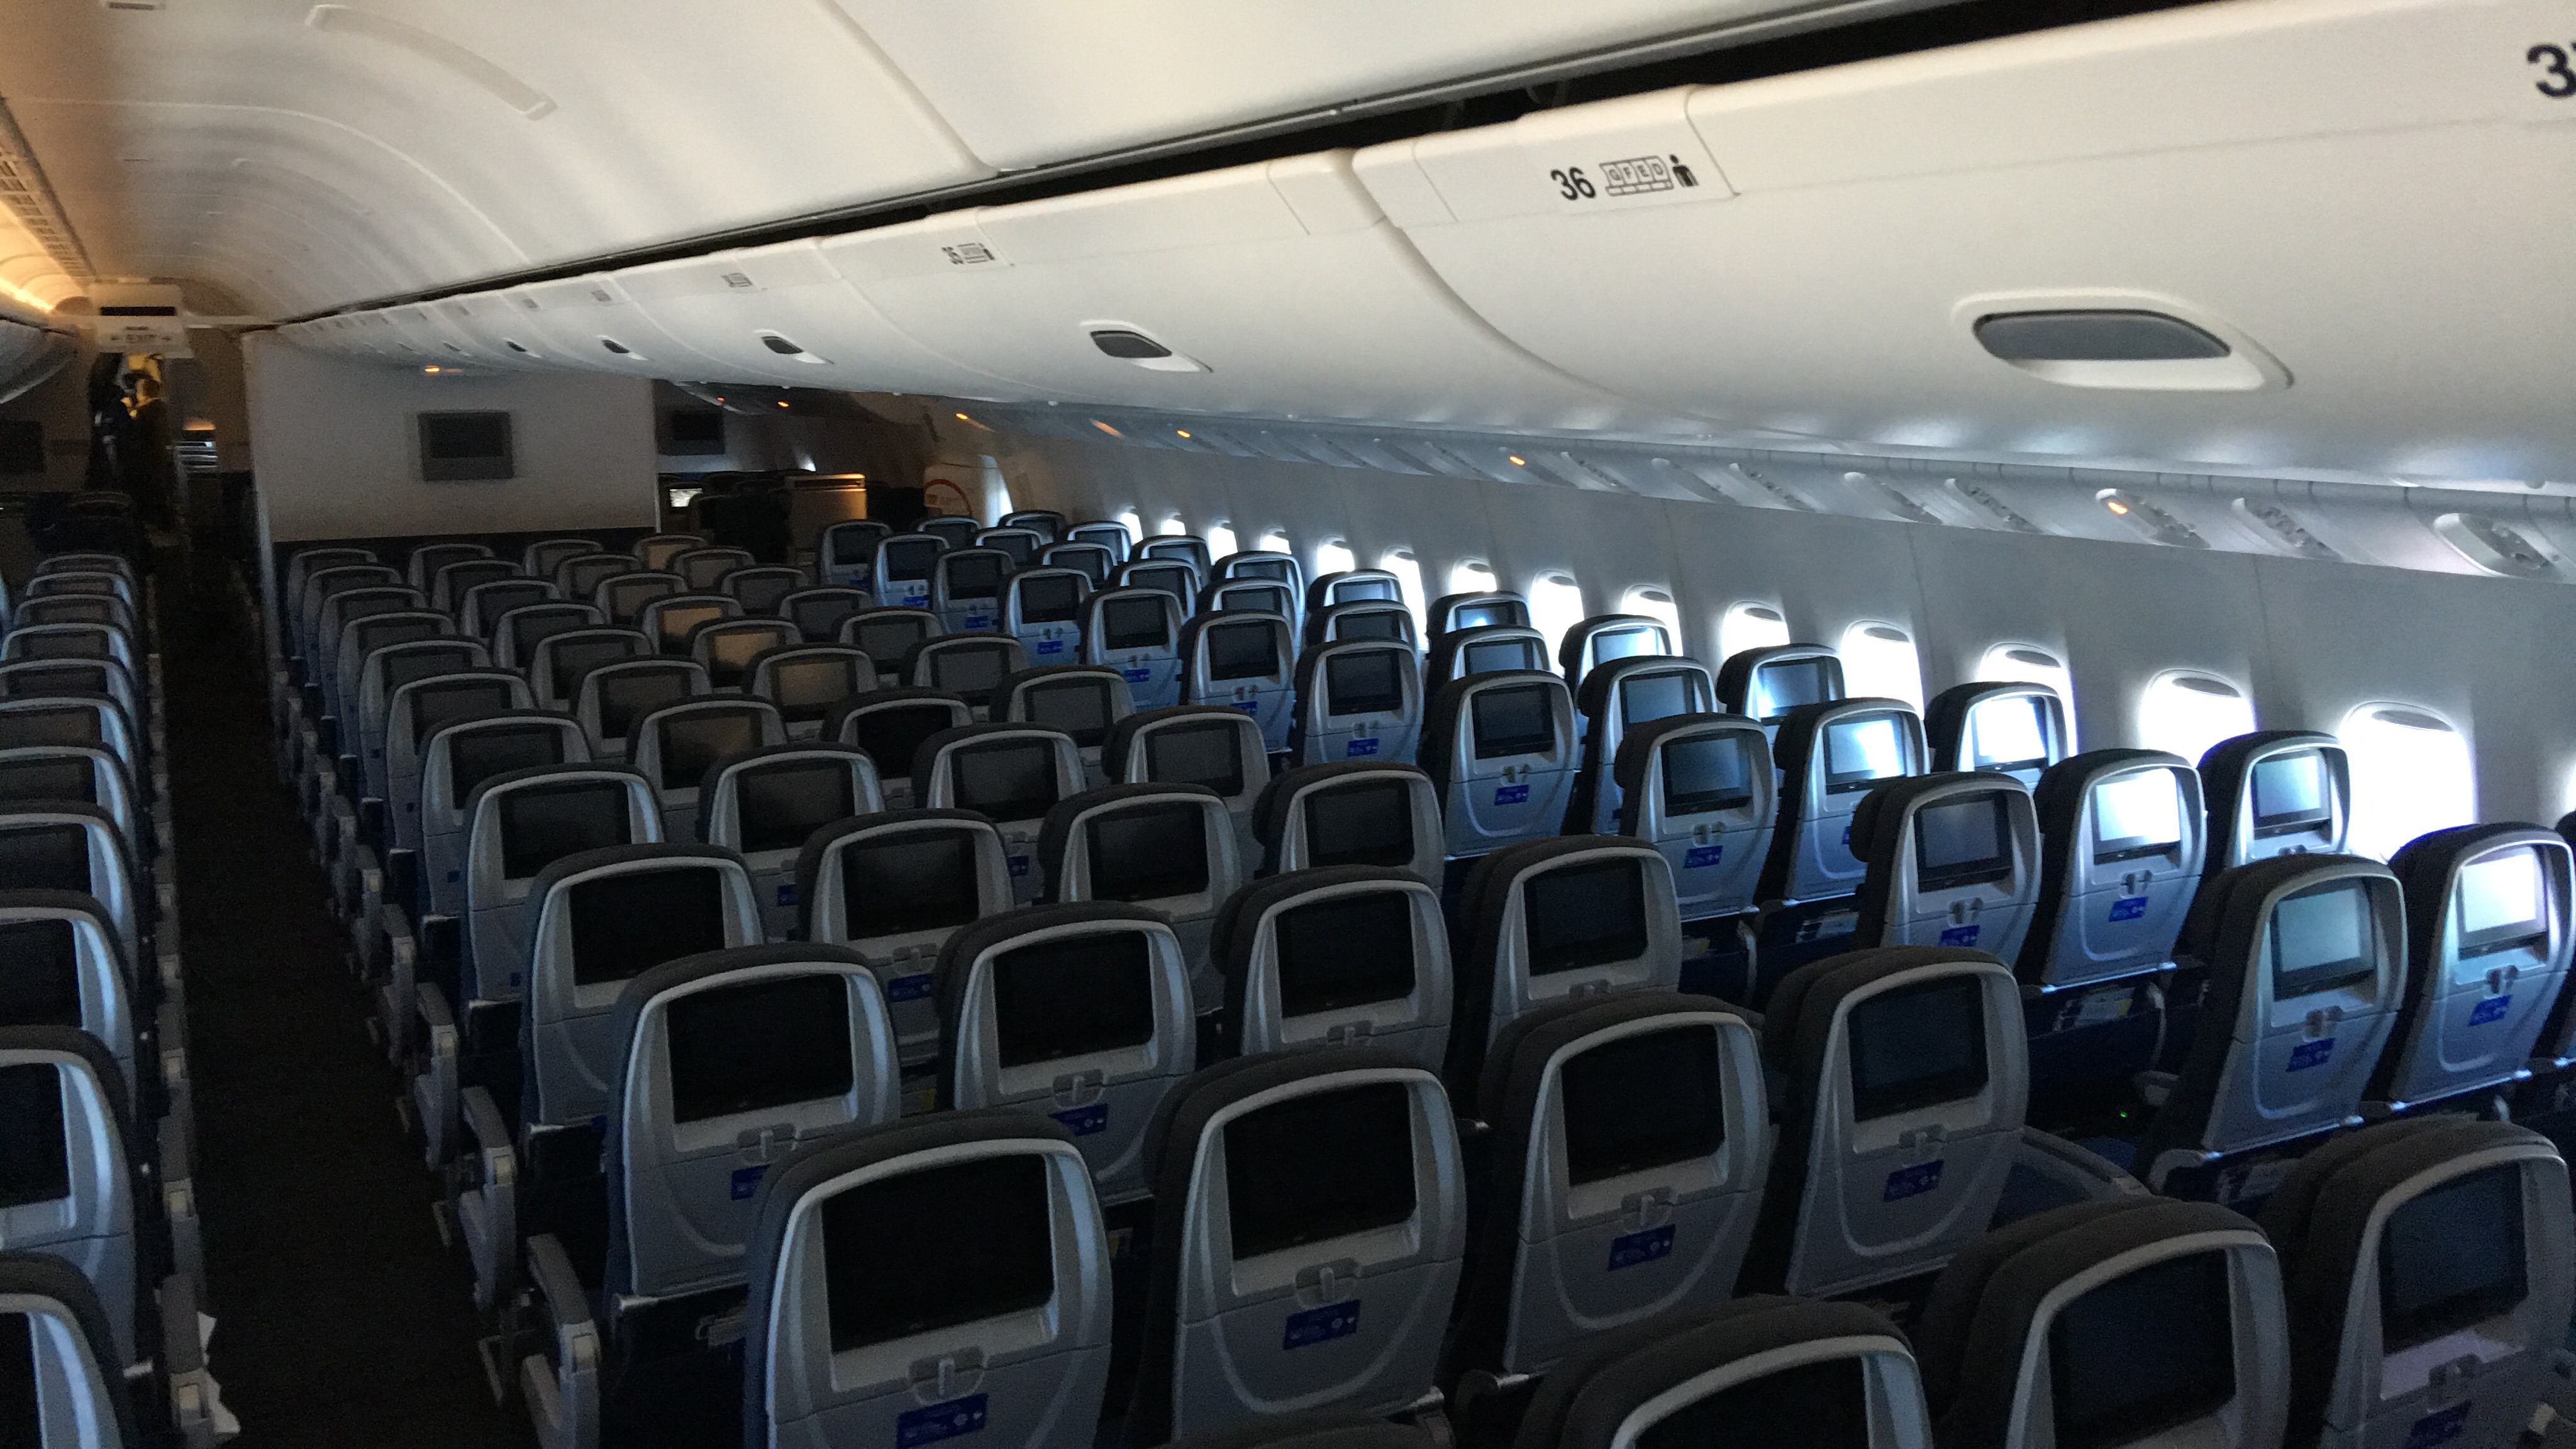 The Big Three U S Carriers And Their 777 Seating